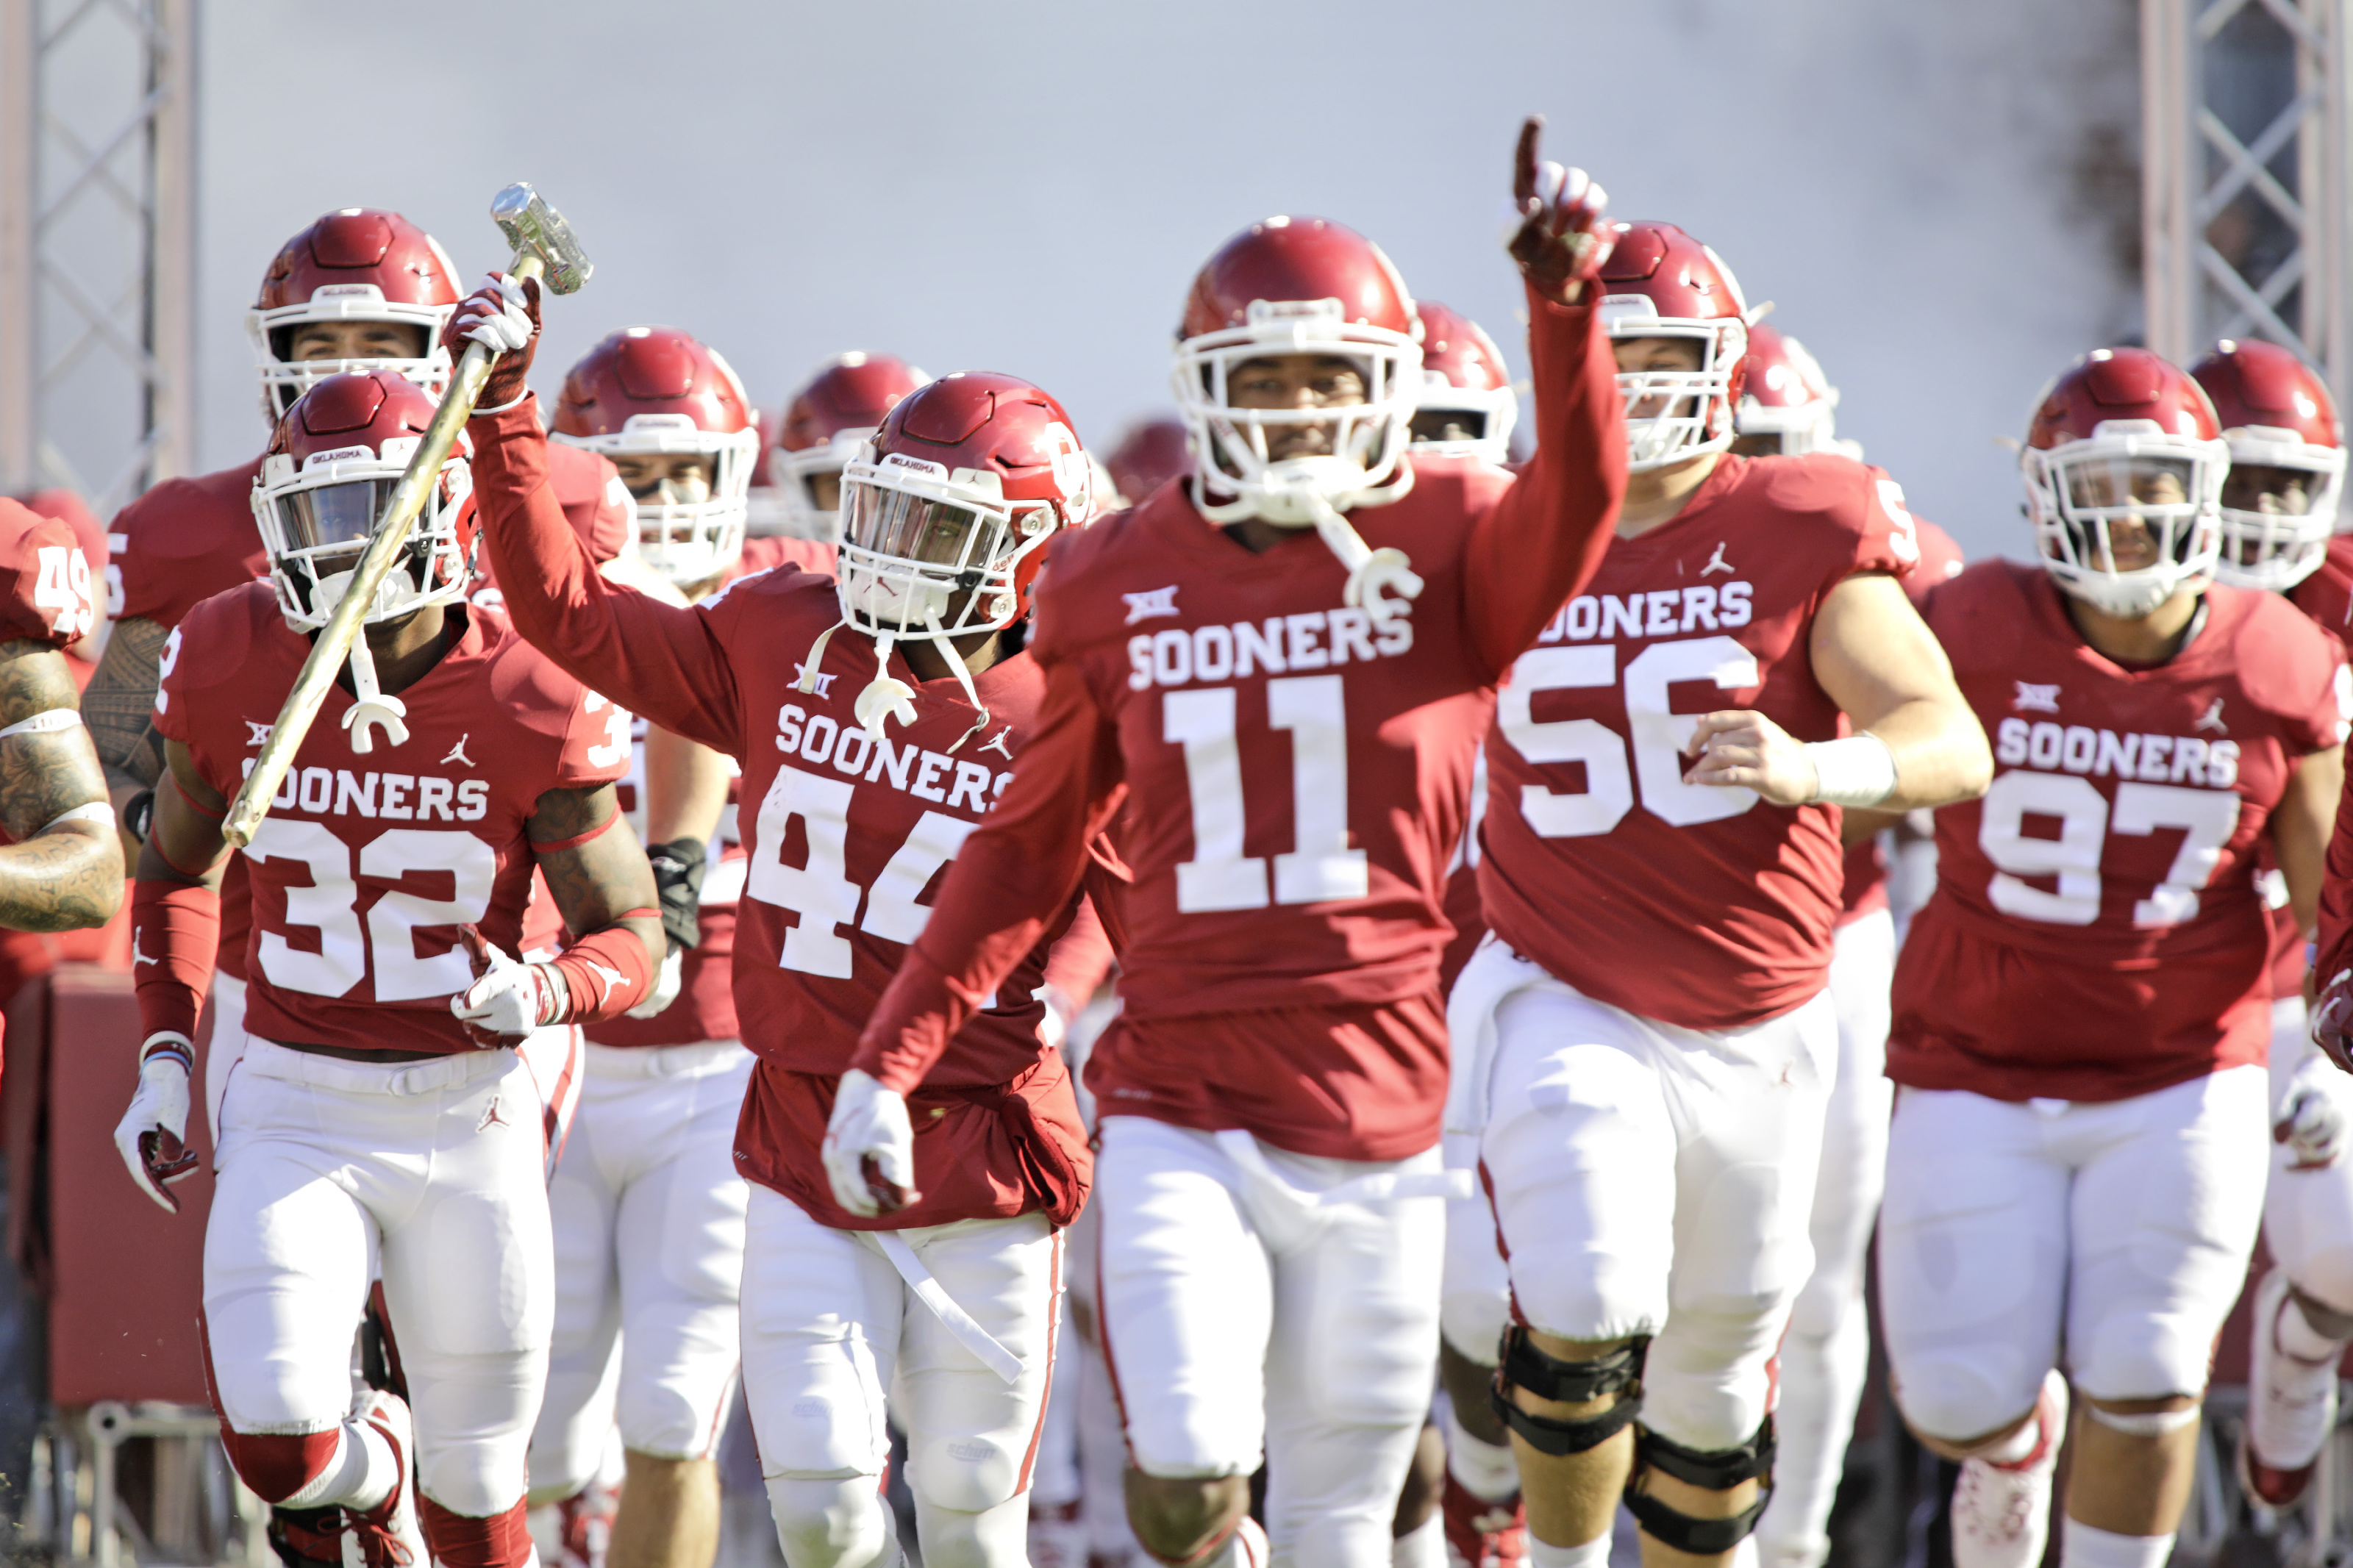 Oklahoma Football Sooners No Strangers To Top Season Starts